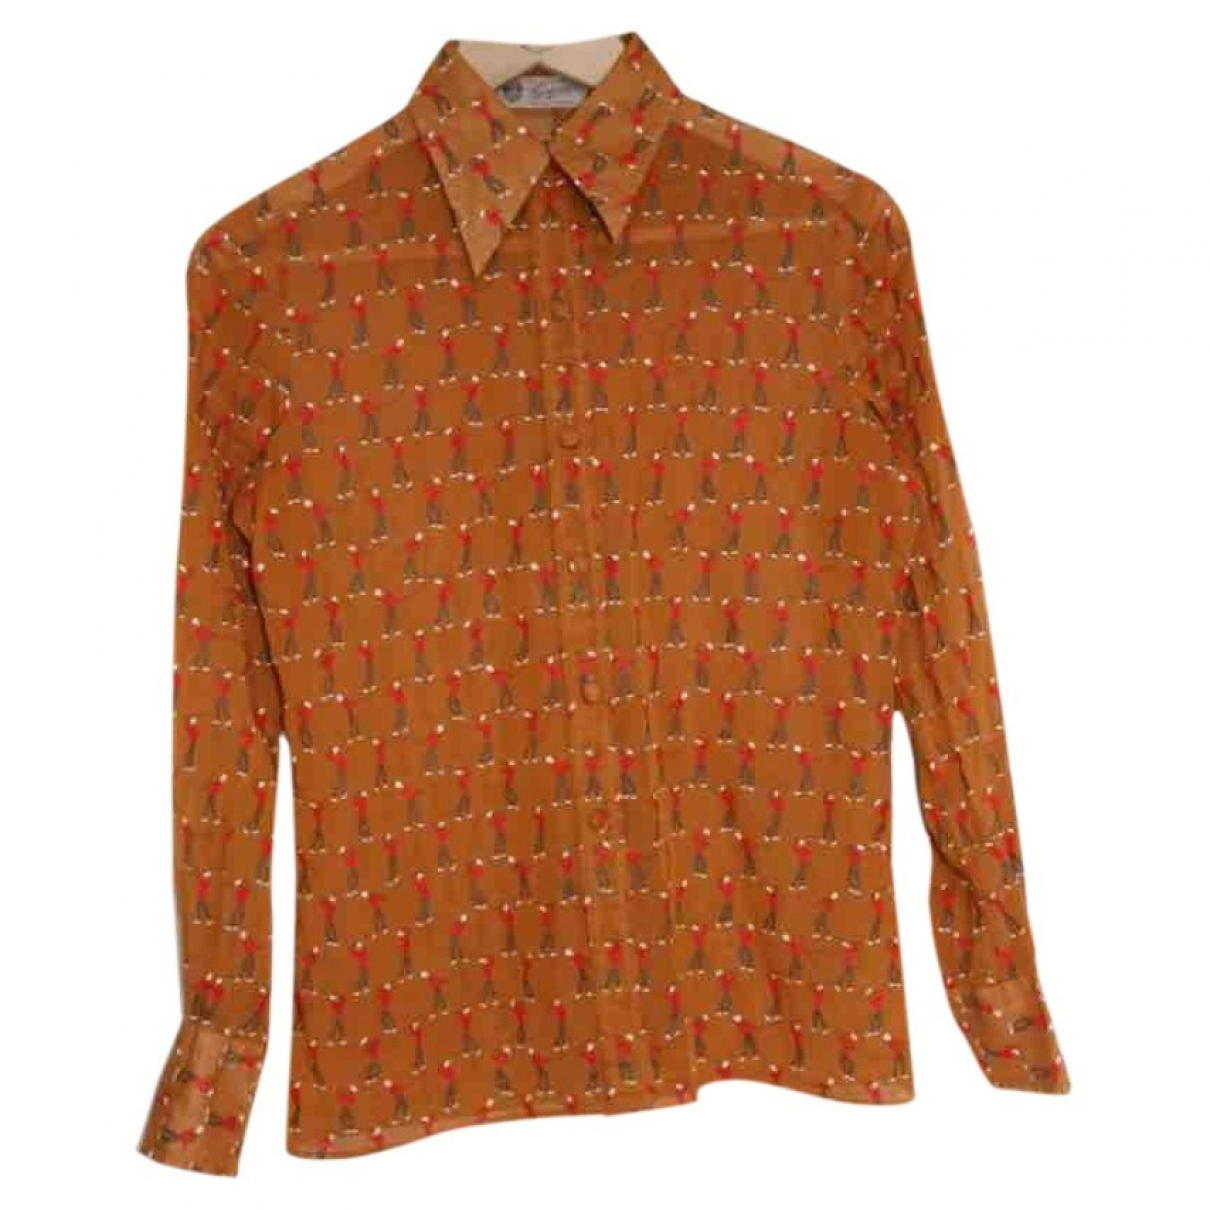 Gucci \N Camel Cotton  top for Women S International